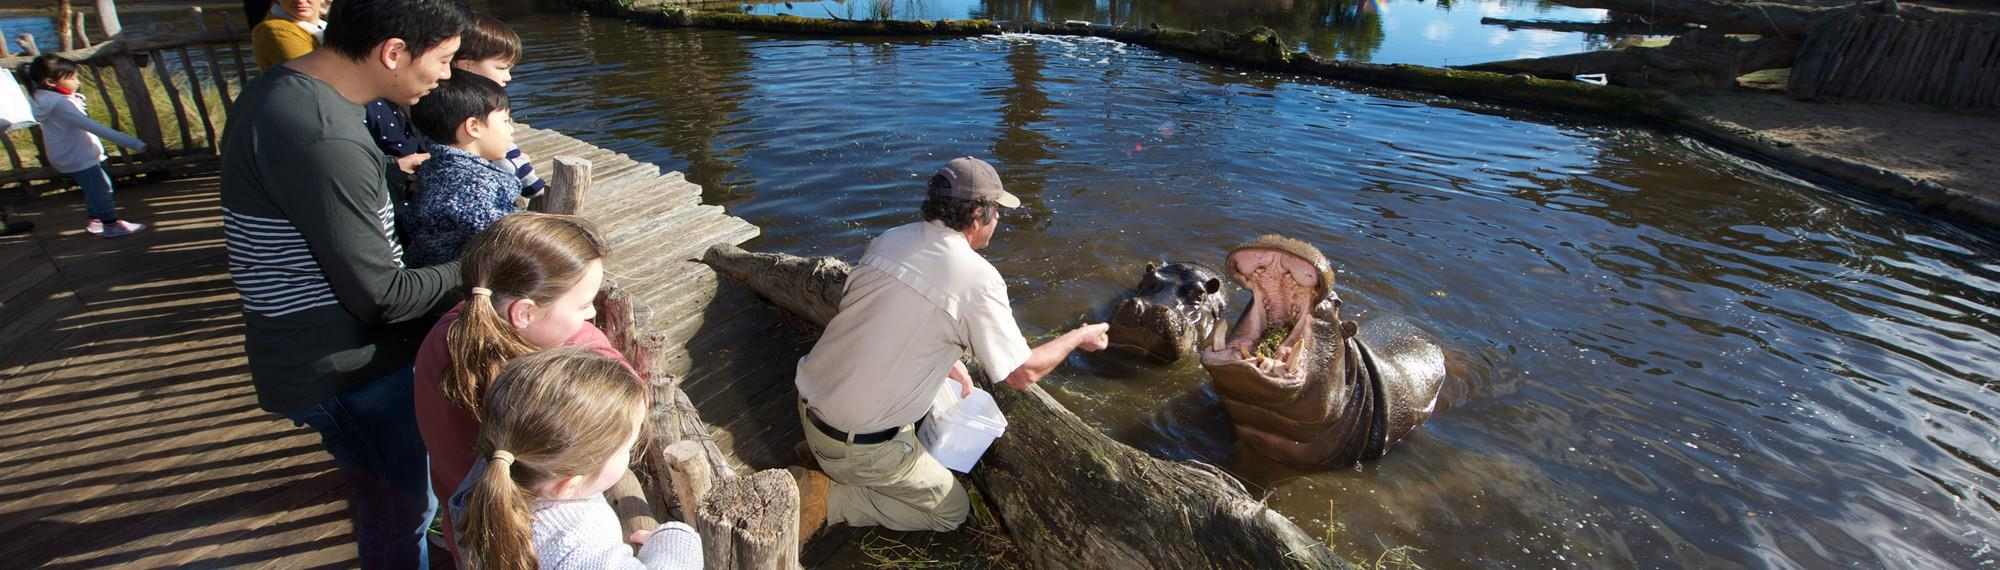 Keeper checking hippos teeth in river